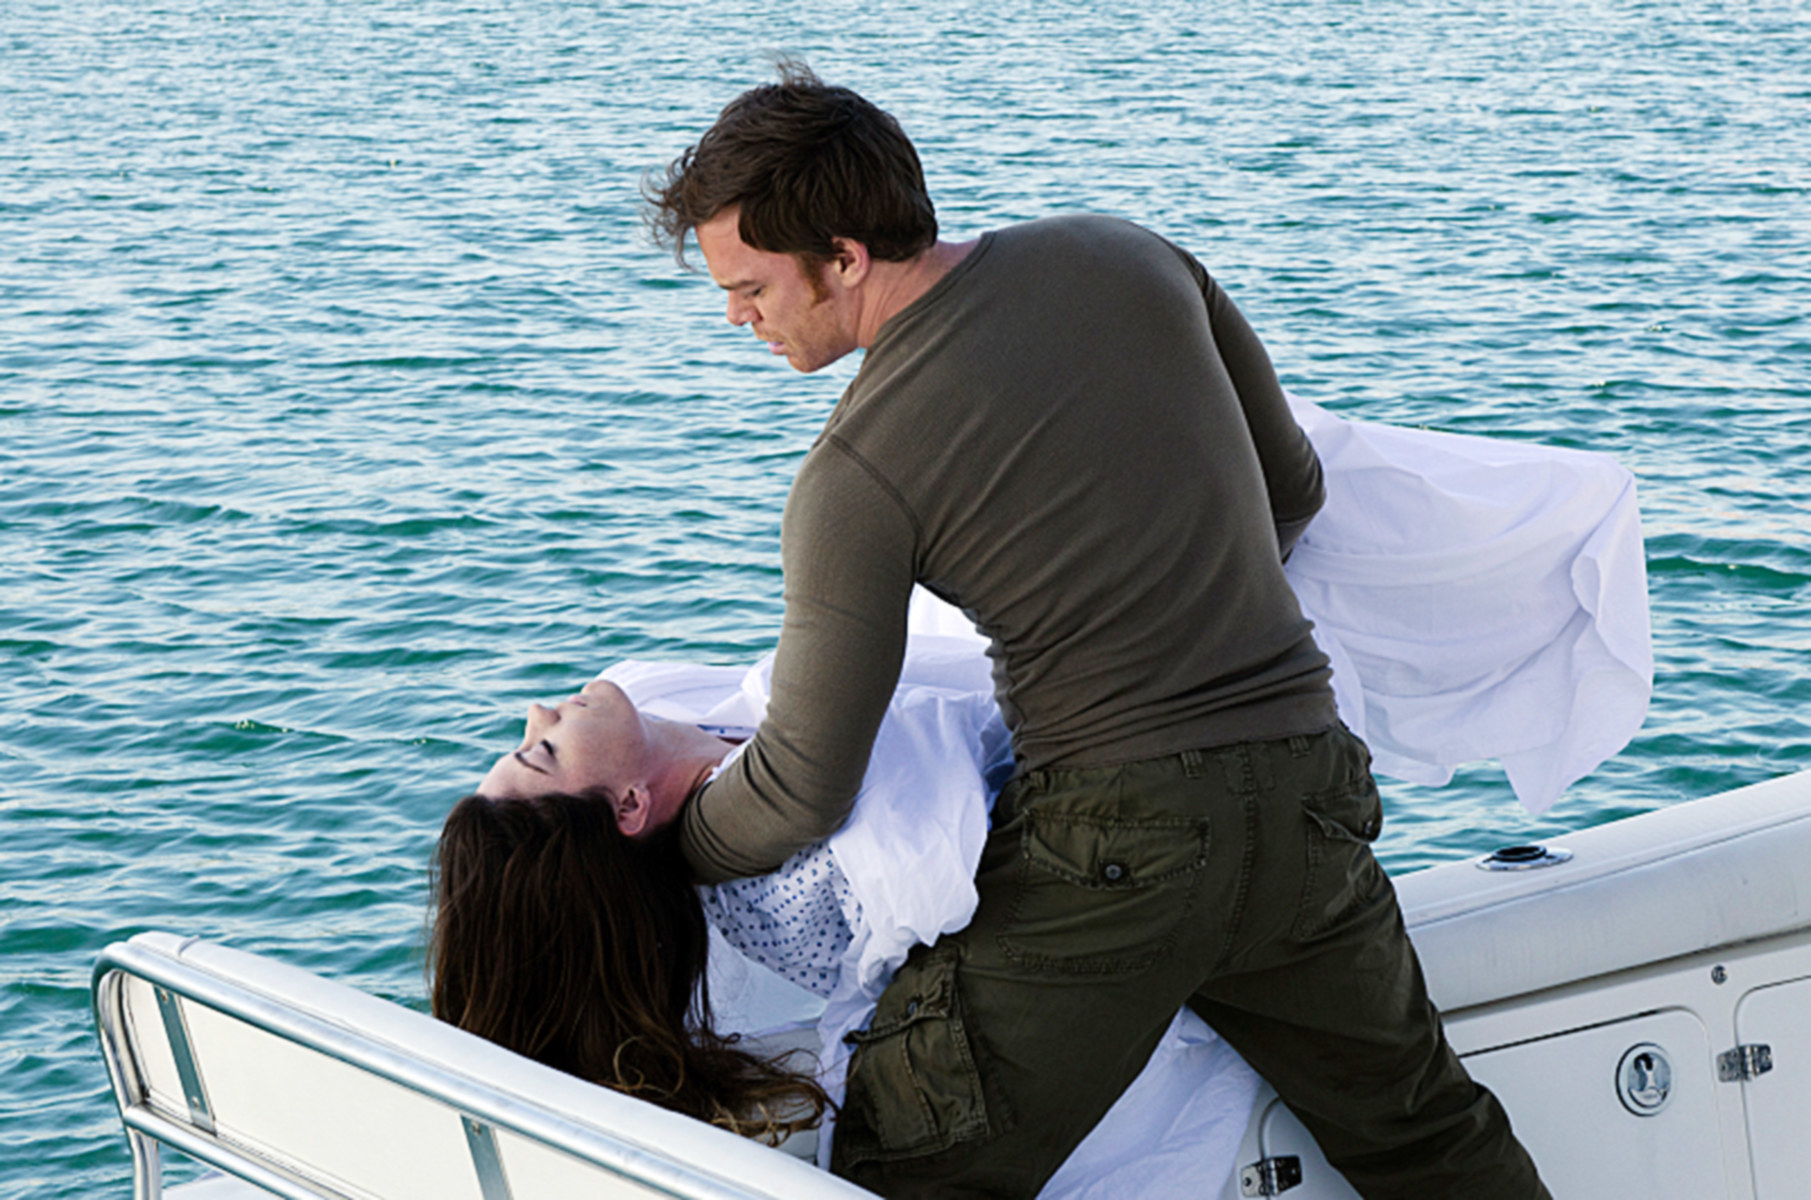 Dexter holding Deb's body, about to dump her into the water